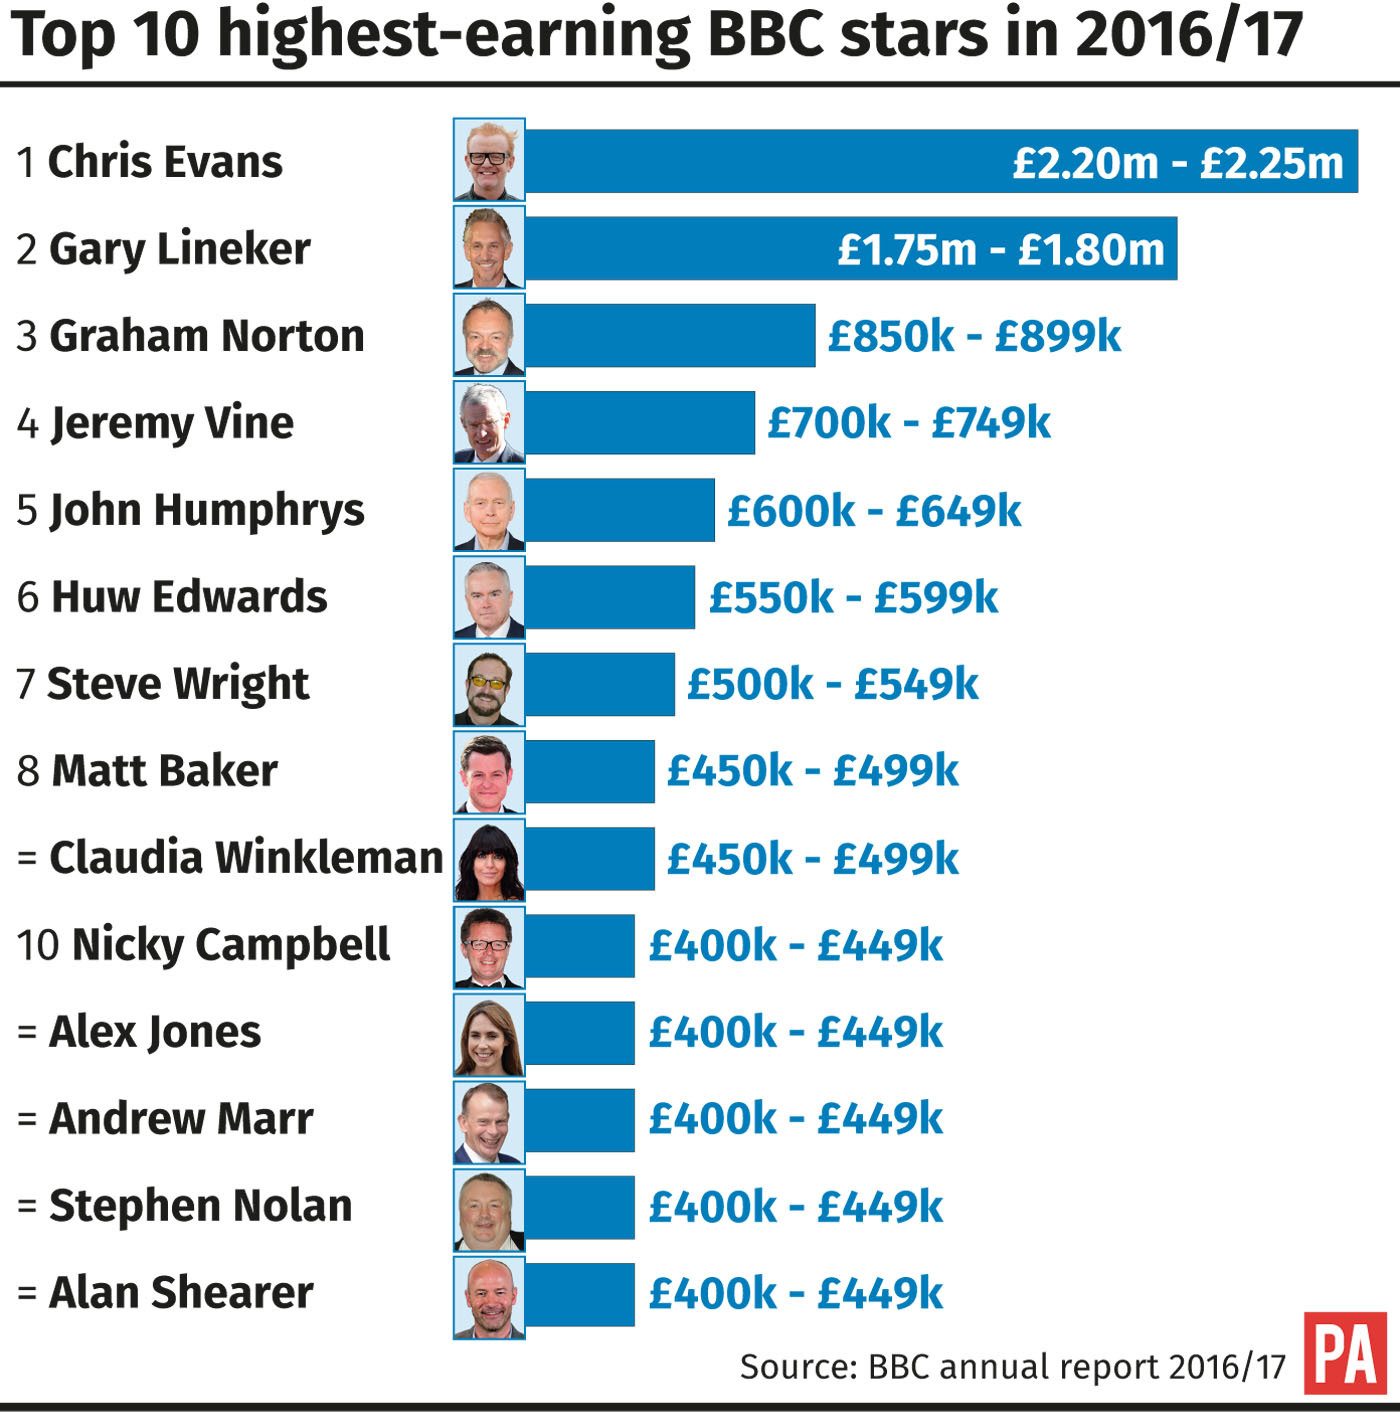 Top 10 highest-earning BBC stars in 2016/17.